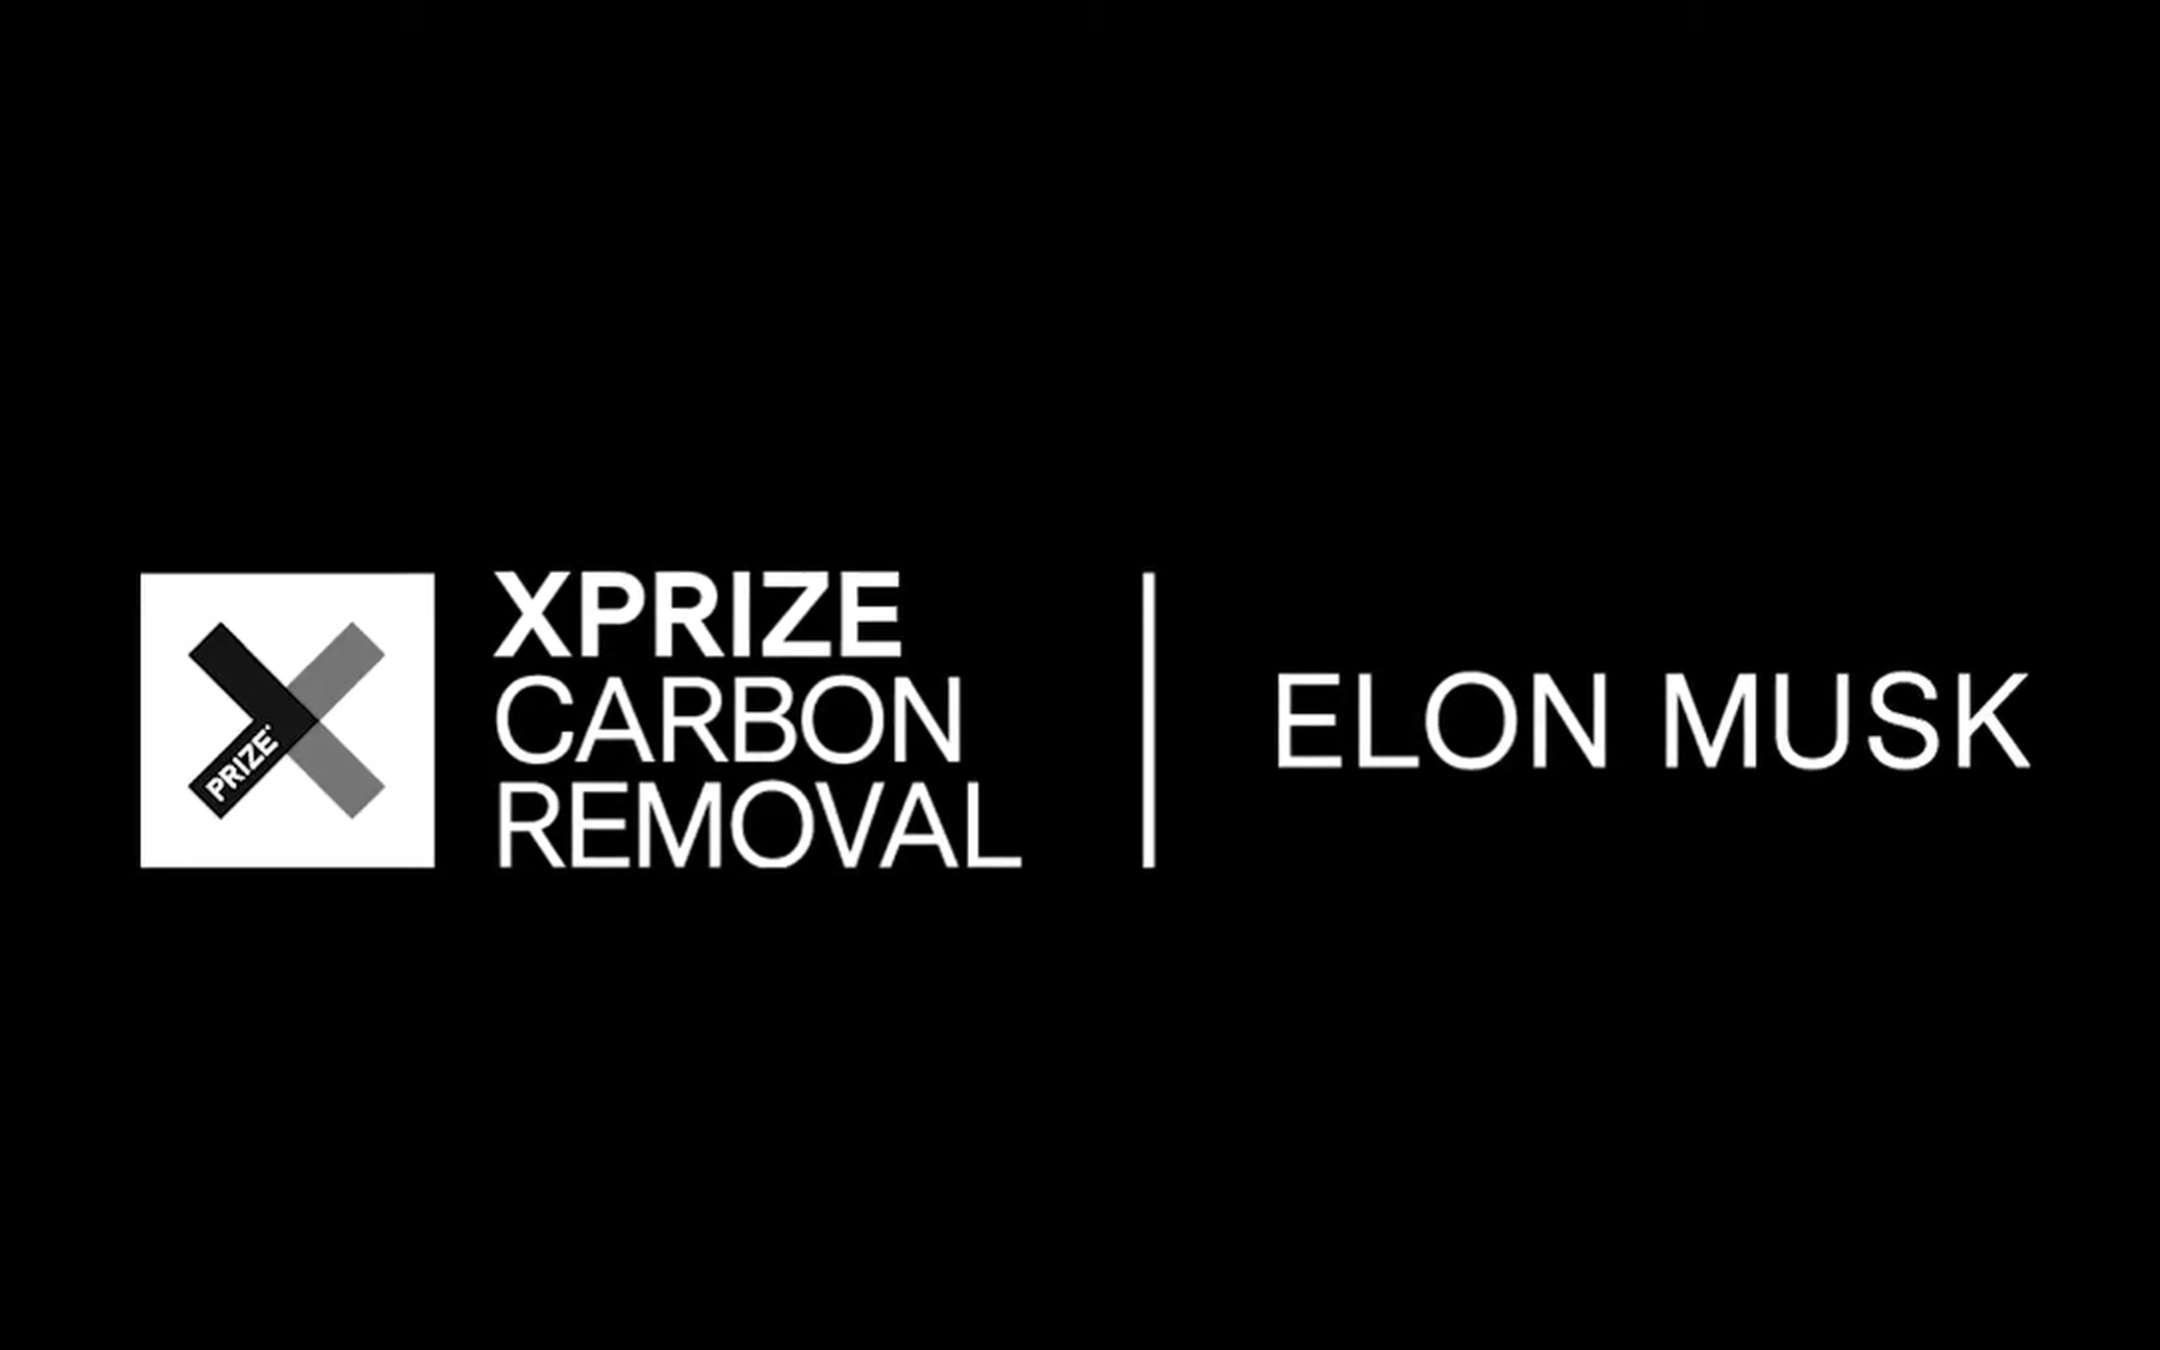 XPRIZE Carbon Removal, the competition begins